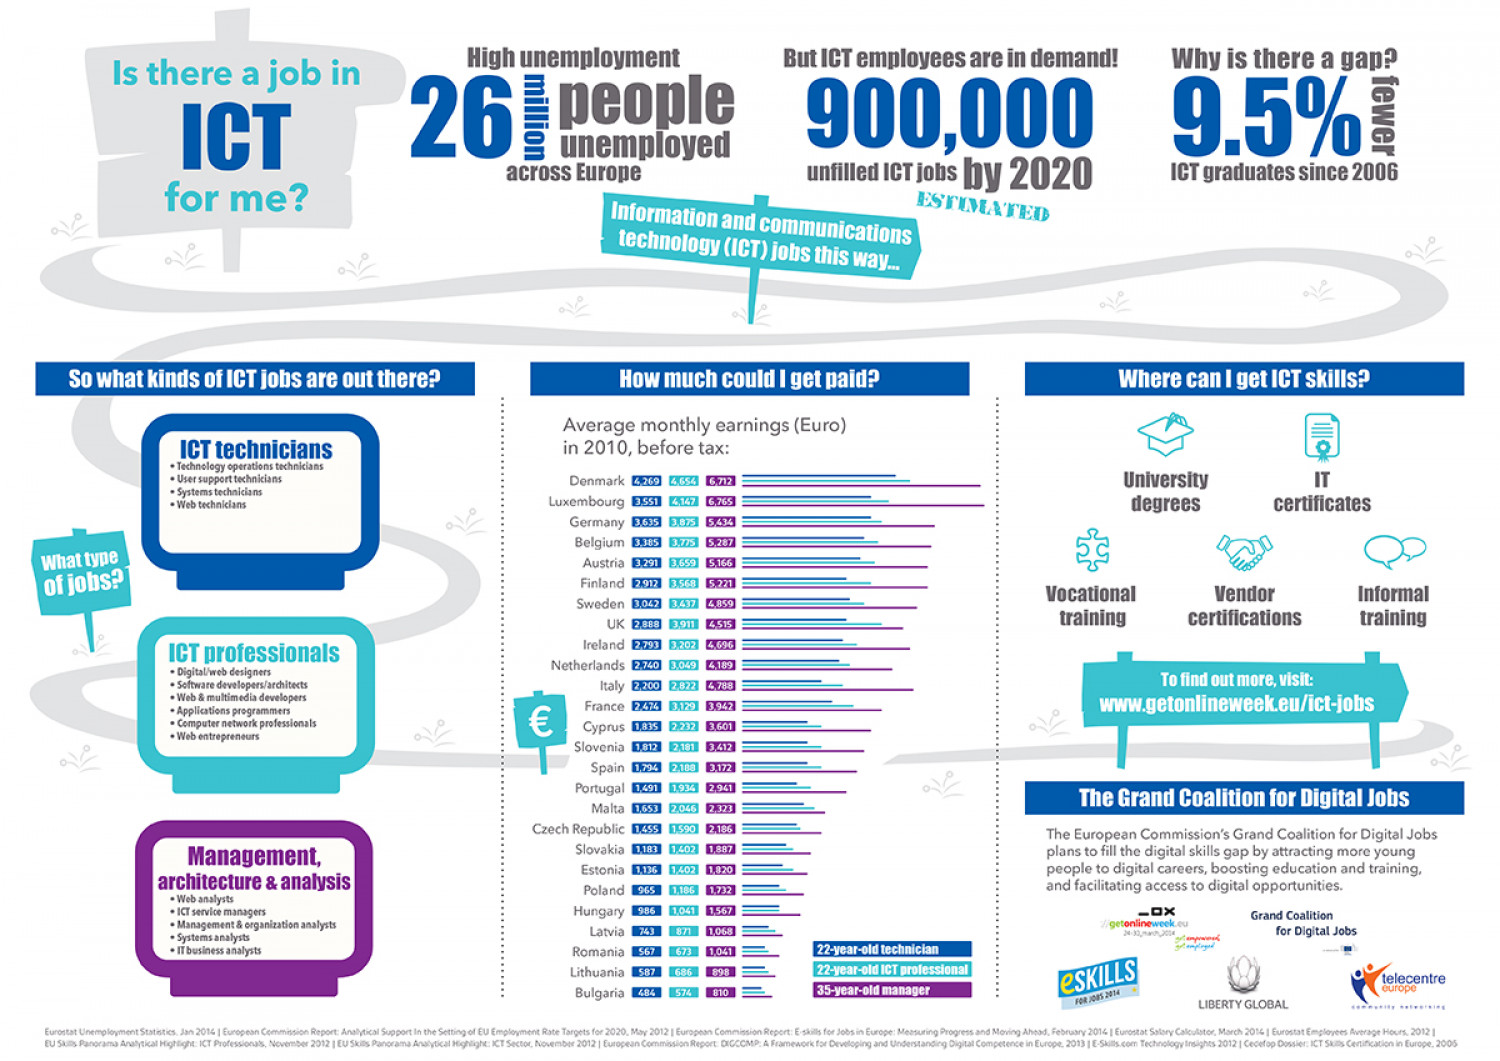 Is There a Job in ICT for me? Infographic